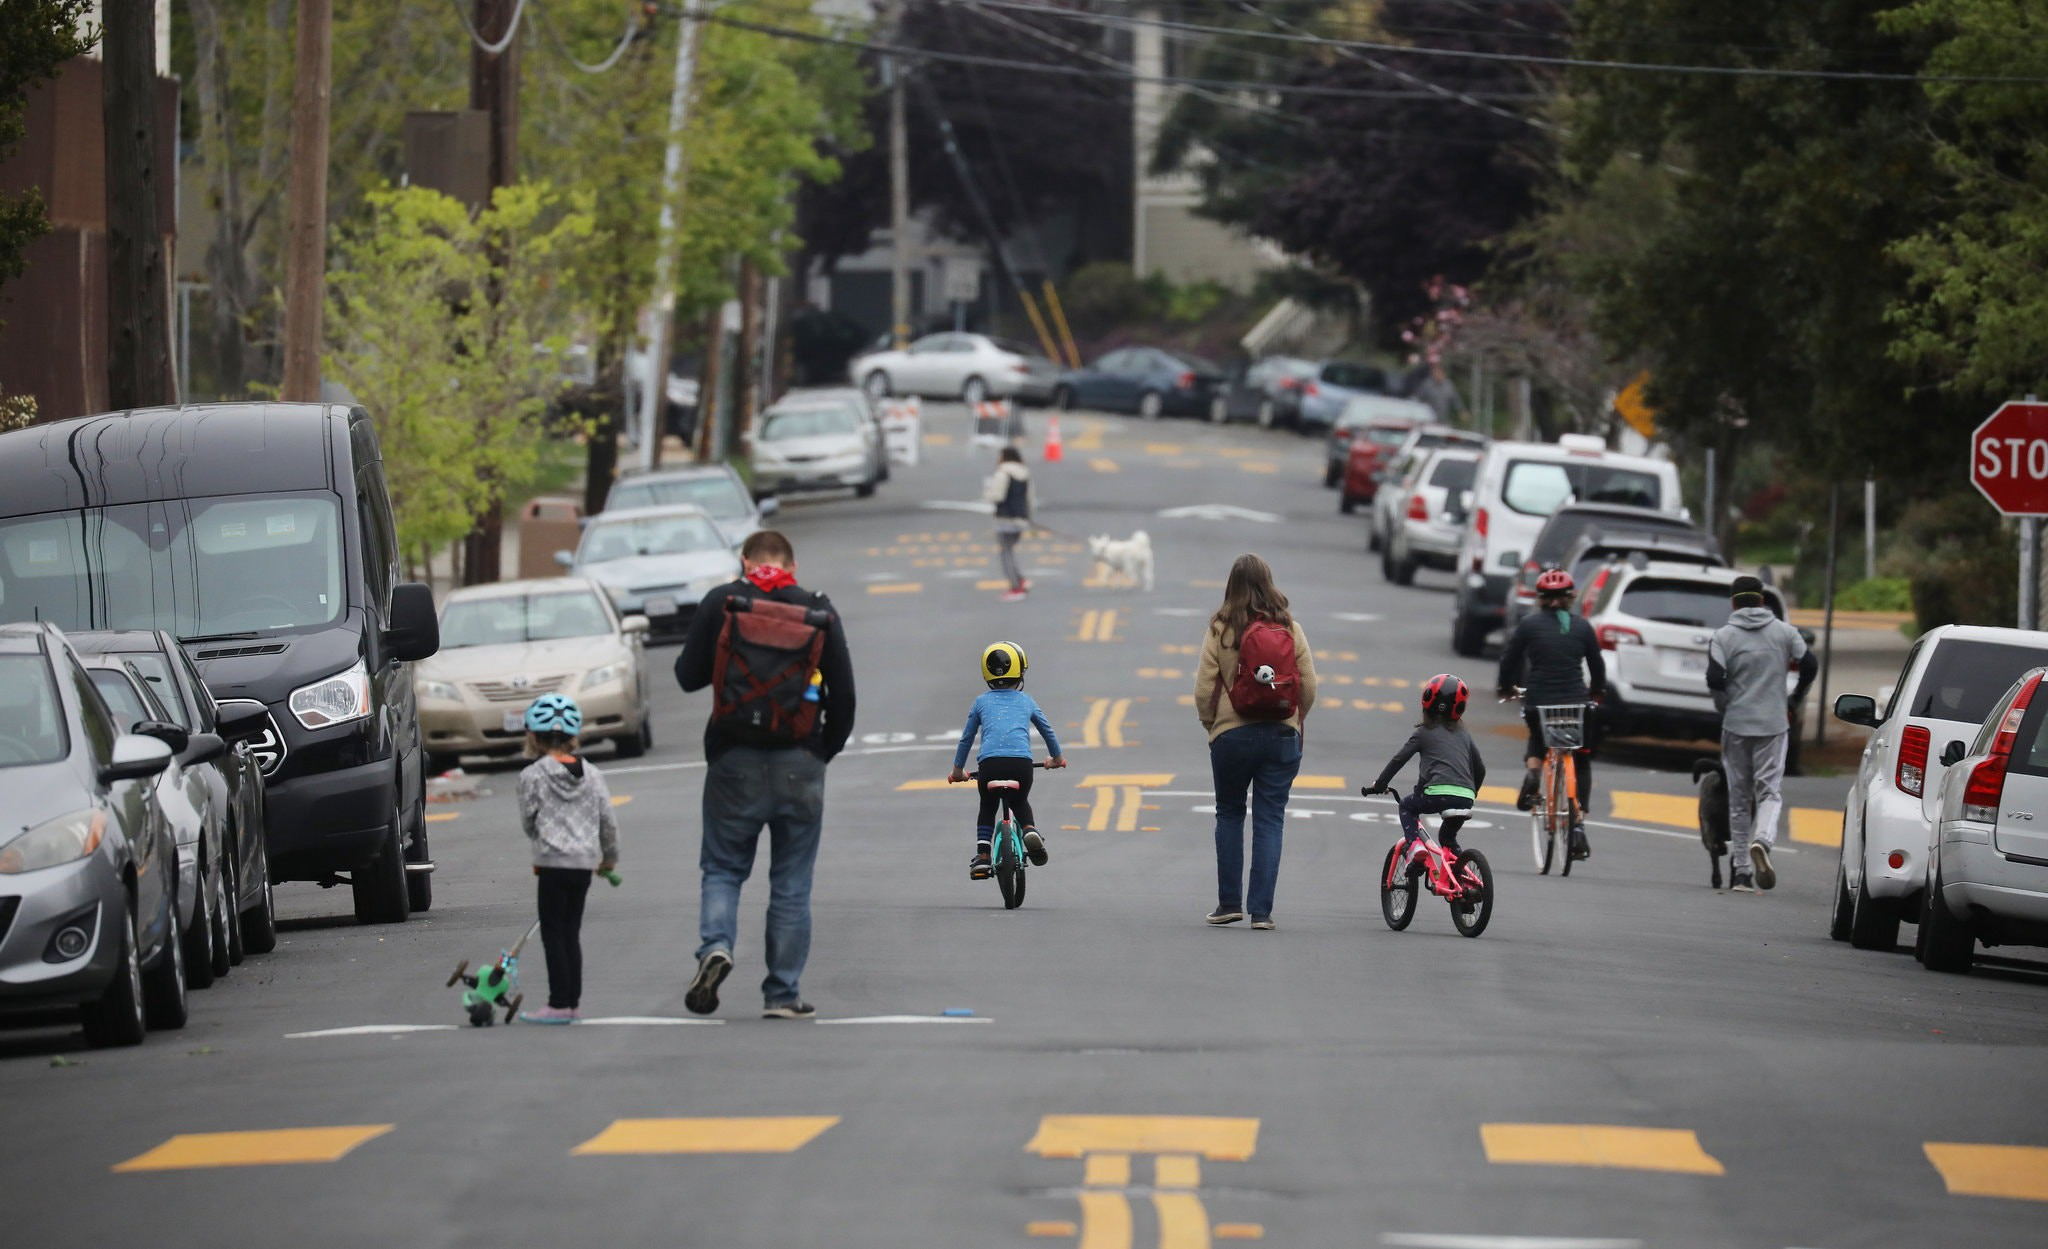 Families walking together safely on open streets during stay-home orders